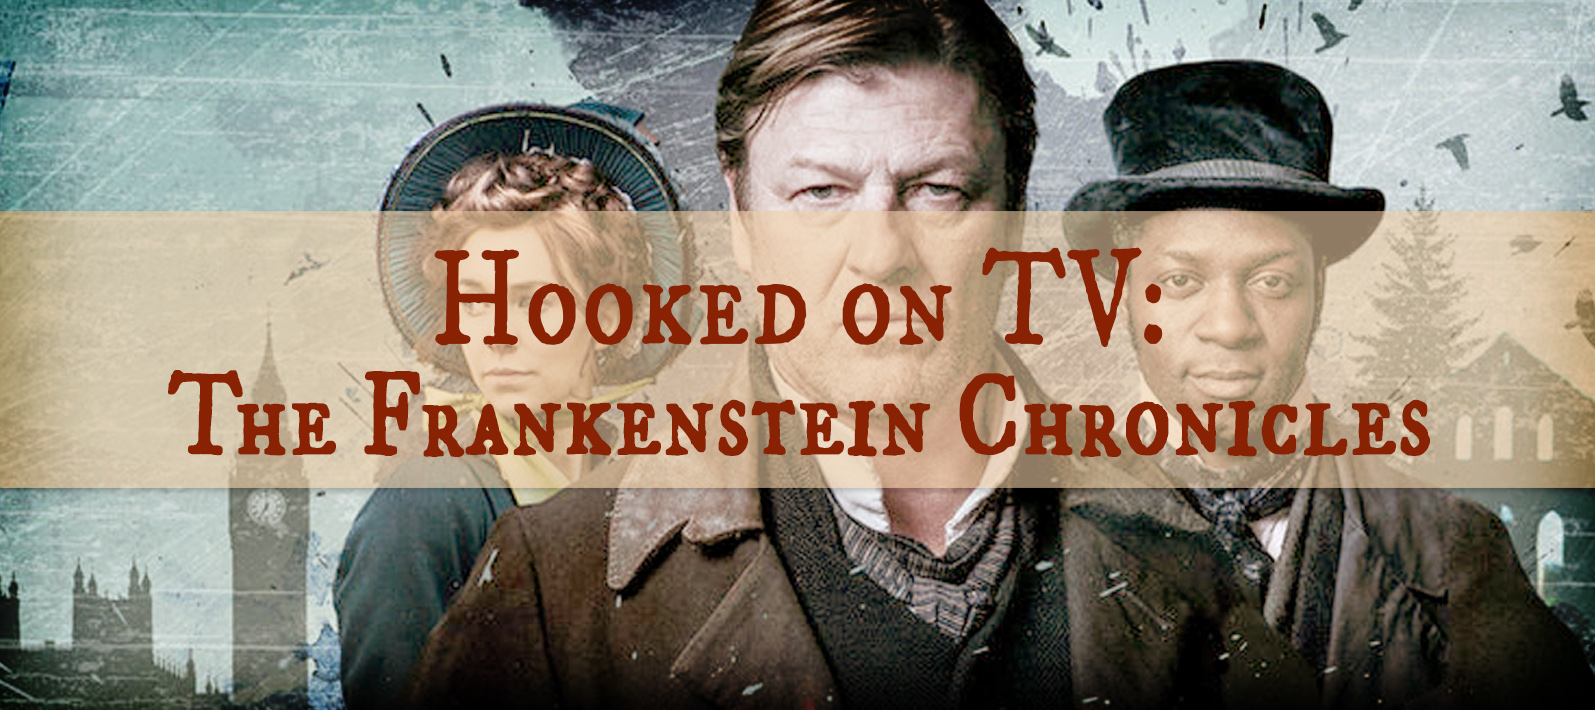 If you're looking for another retelling of the Frankenstein novel, this isn't it—but The Frankenstein Chronicles is a fascinating and creative tale in which the book figures. It's horror, mystery—and sci-fi. And who *is* the antagonist? http://robinlythgoe.com